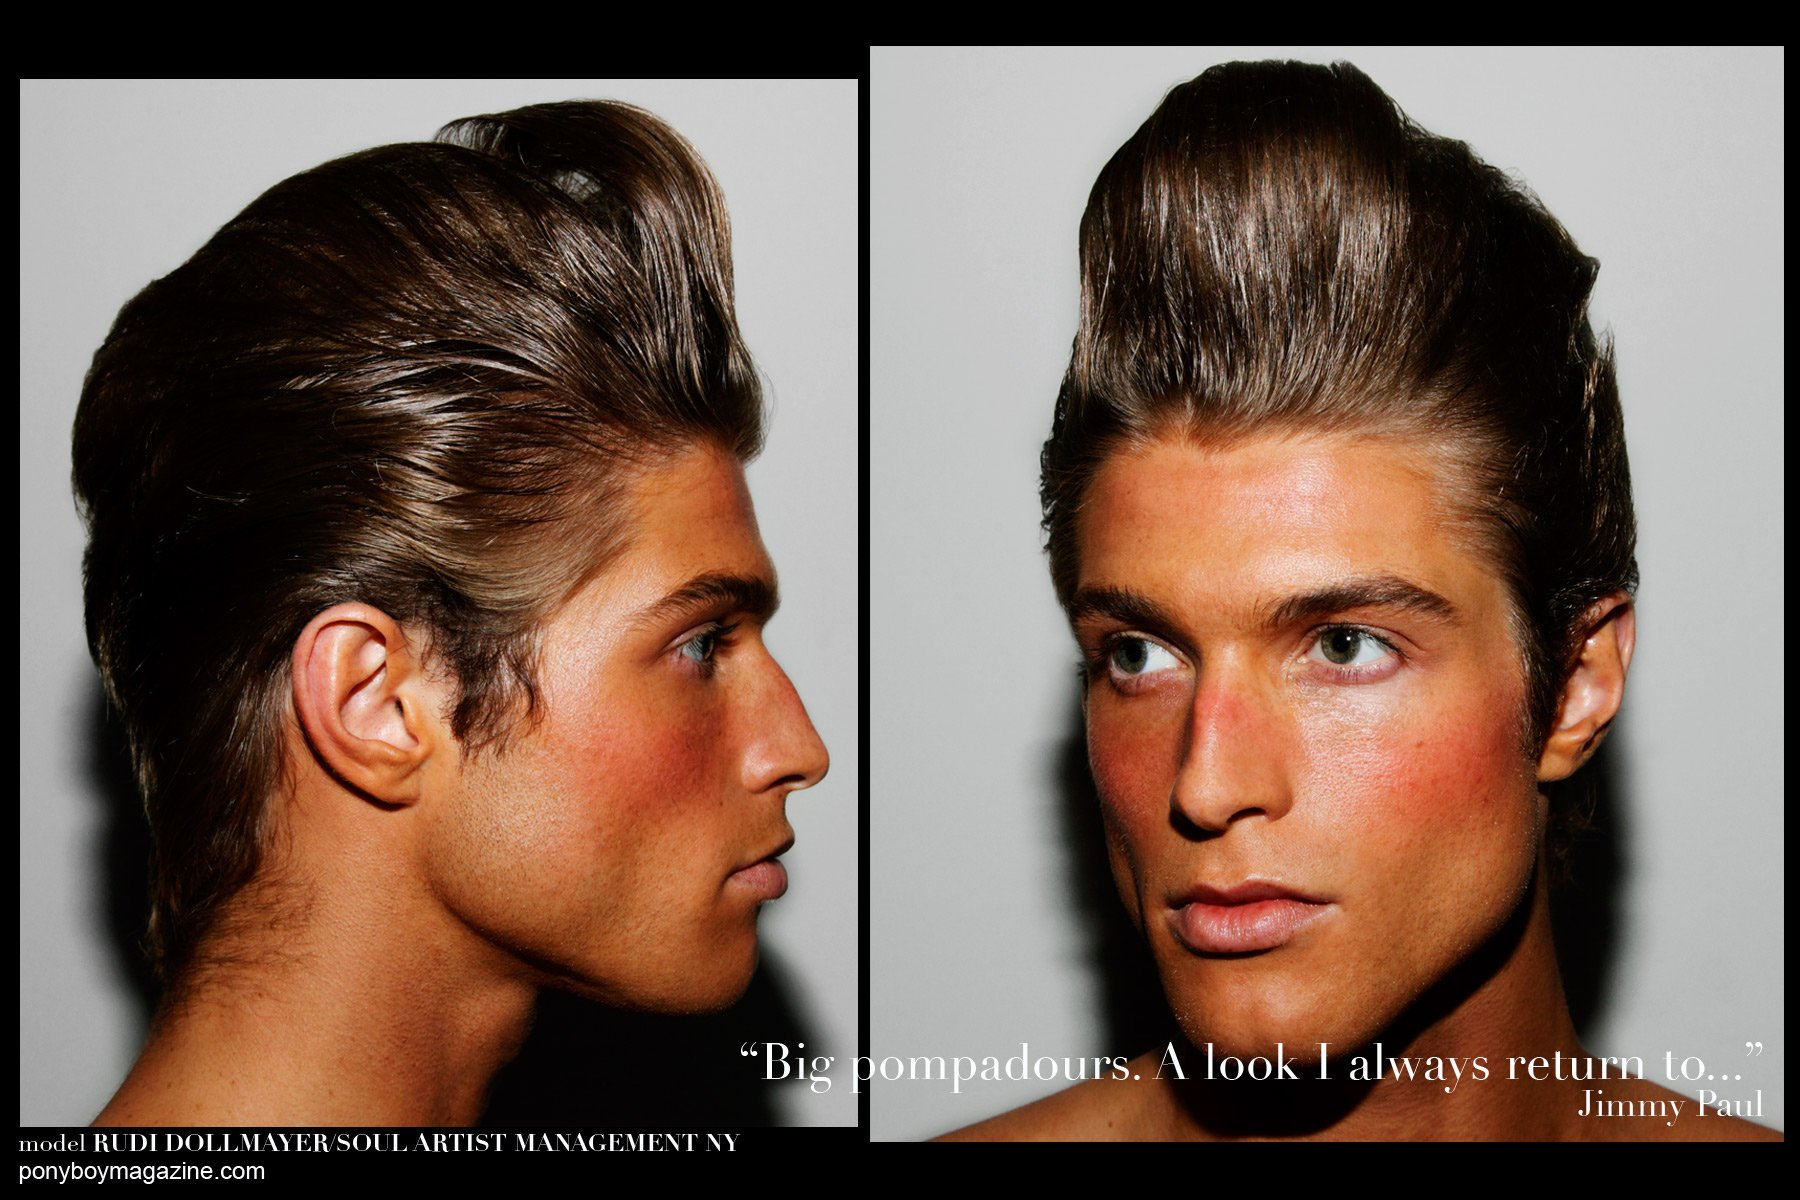 Male model Rudi Dollmayer from Soul Artist Management, photographed backstage at Martin Keehn S/S15. Hair by Jimmy Paul, with makeup by Marc Carrasquillo. Photographs by Alexander Thompson for Ponyboy Magazine.